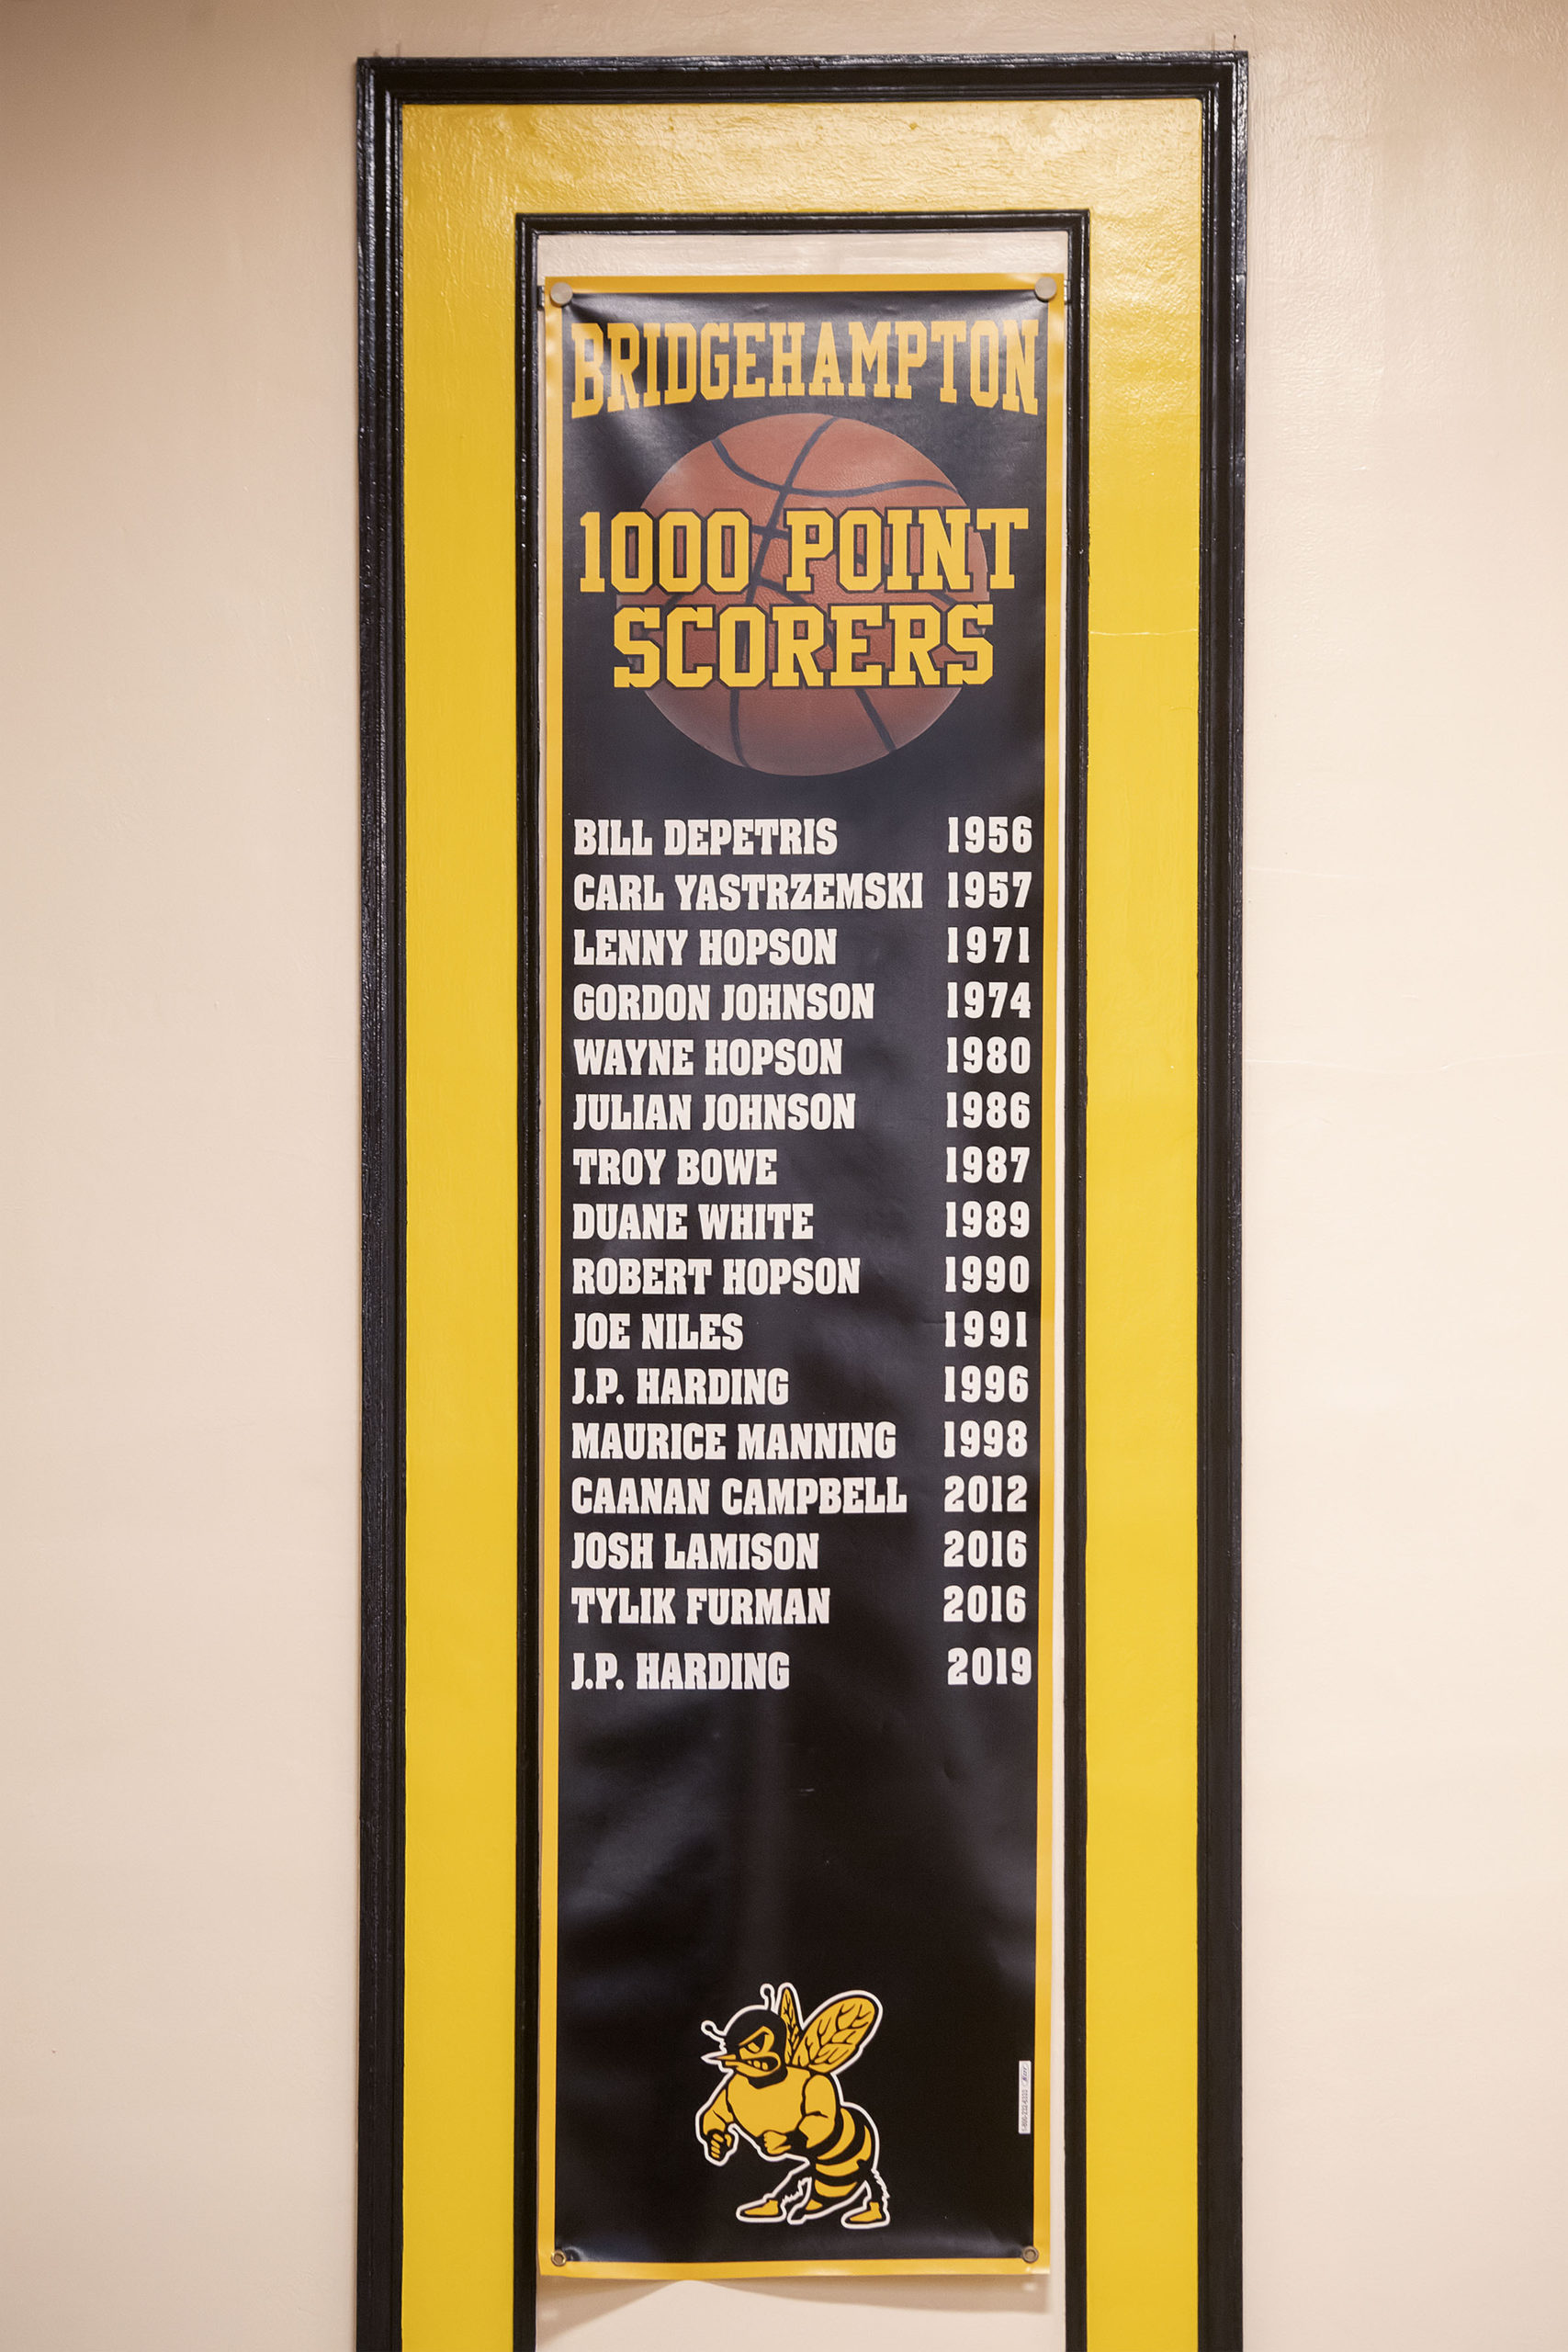 The 1,000-point scorers in Bridgehampton history.